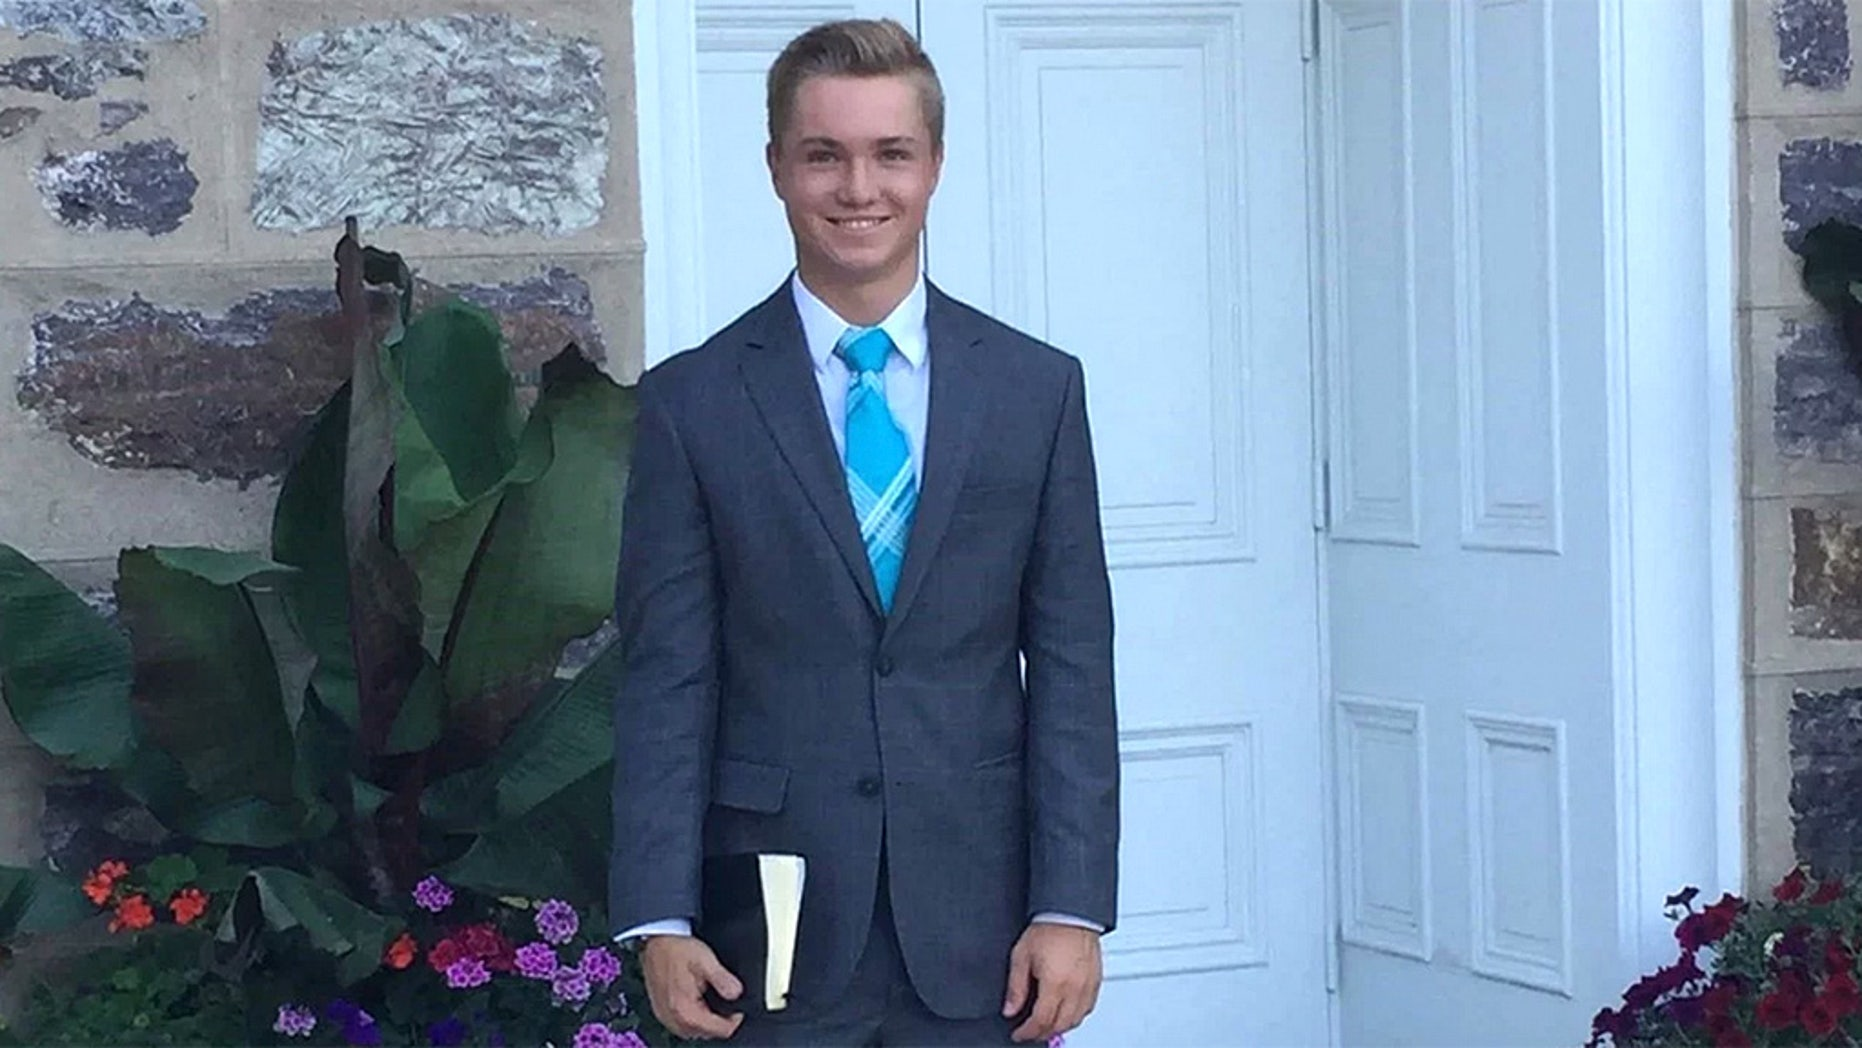 Brennan Conrad, 18, died Wednesday after he fell from the roof of his apartment building in the Dominican Republic, LDS Church said.